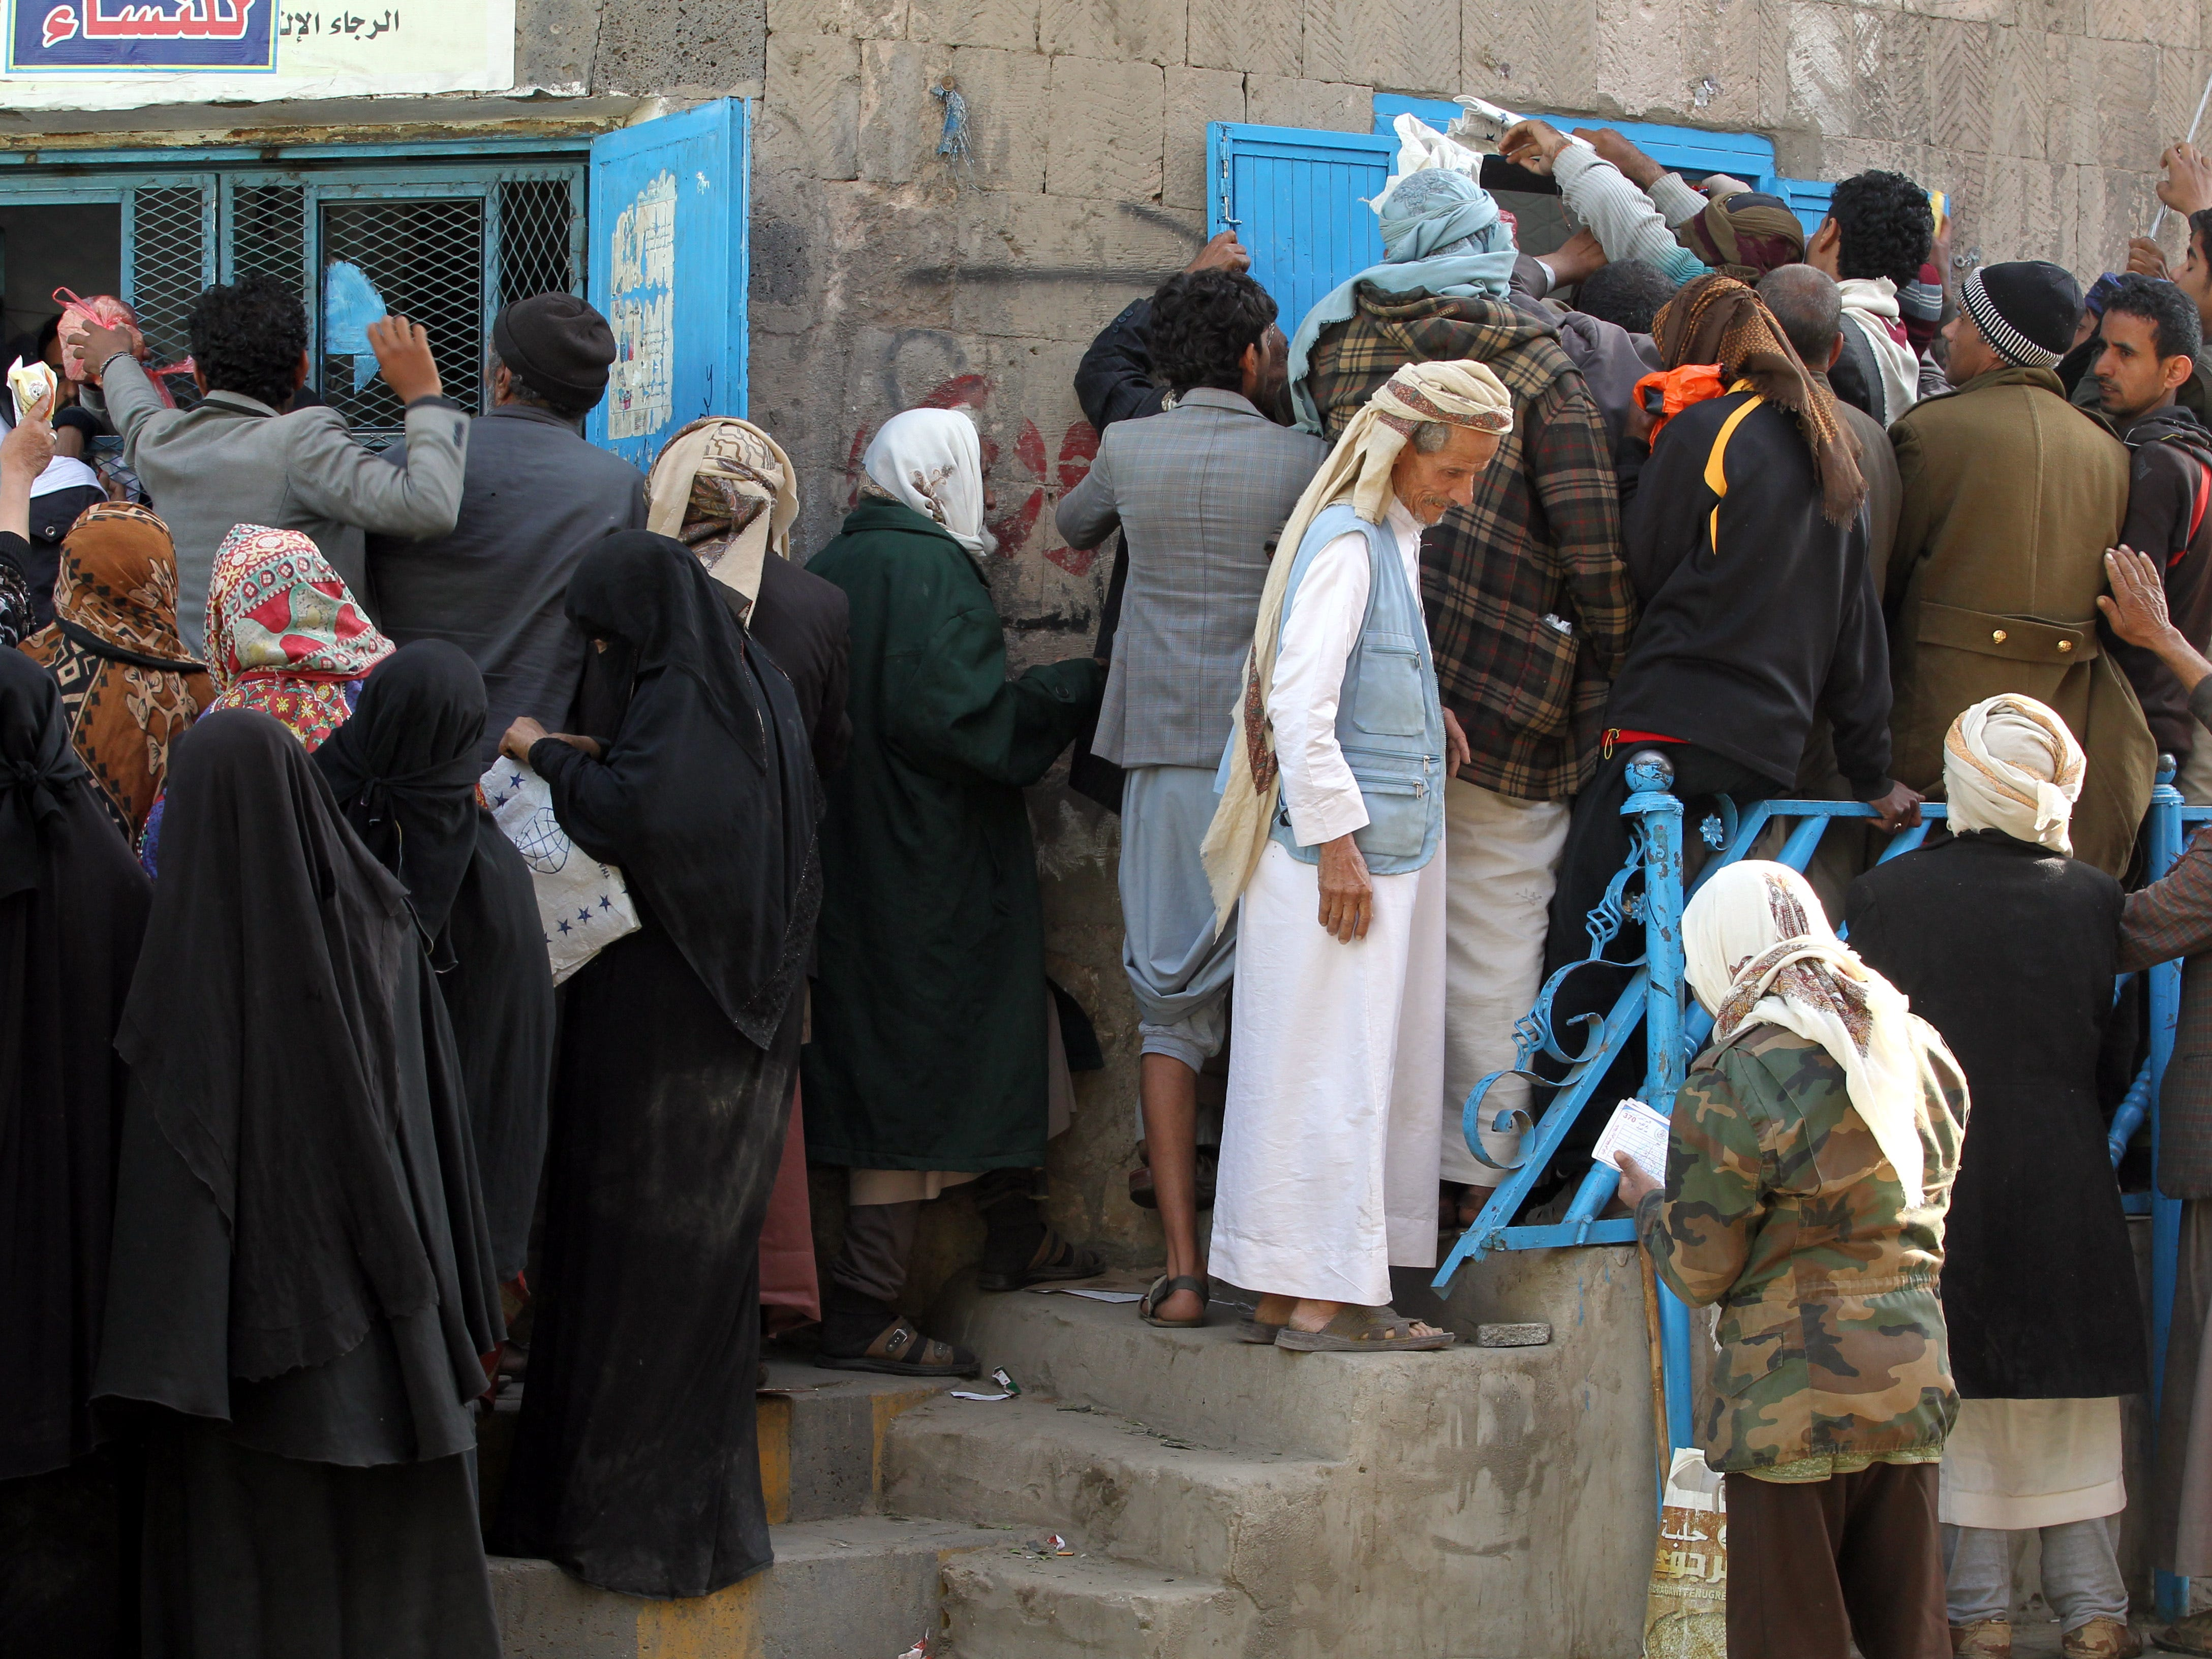 Yemenis gather to receive free bread by a local charity bakery amid a severe shortage of food in Sana'a, Yemen, Nov. 28, 2018.